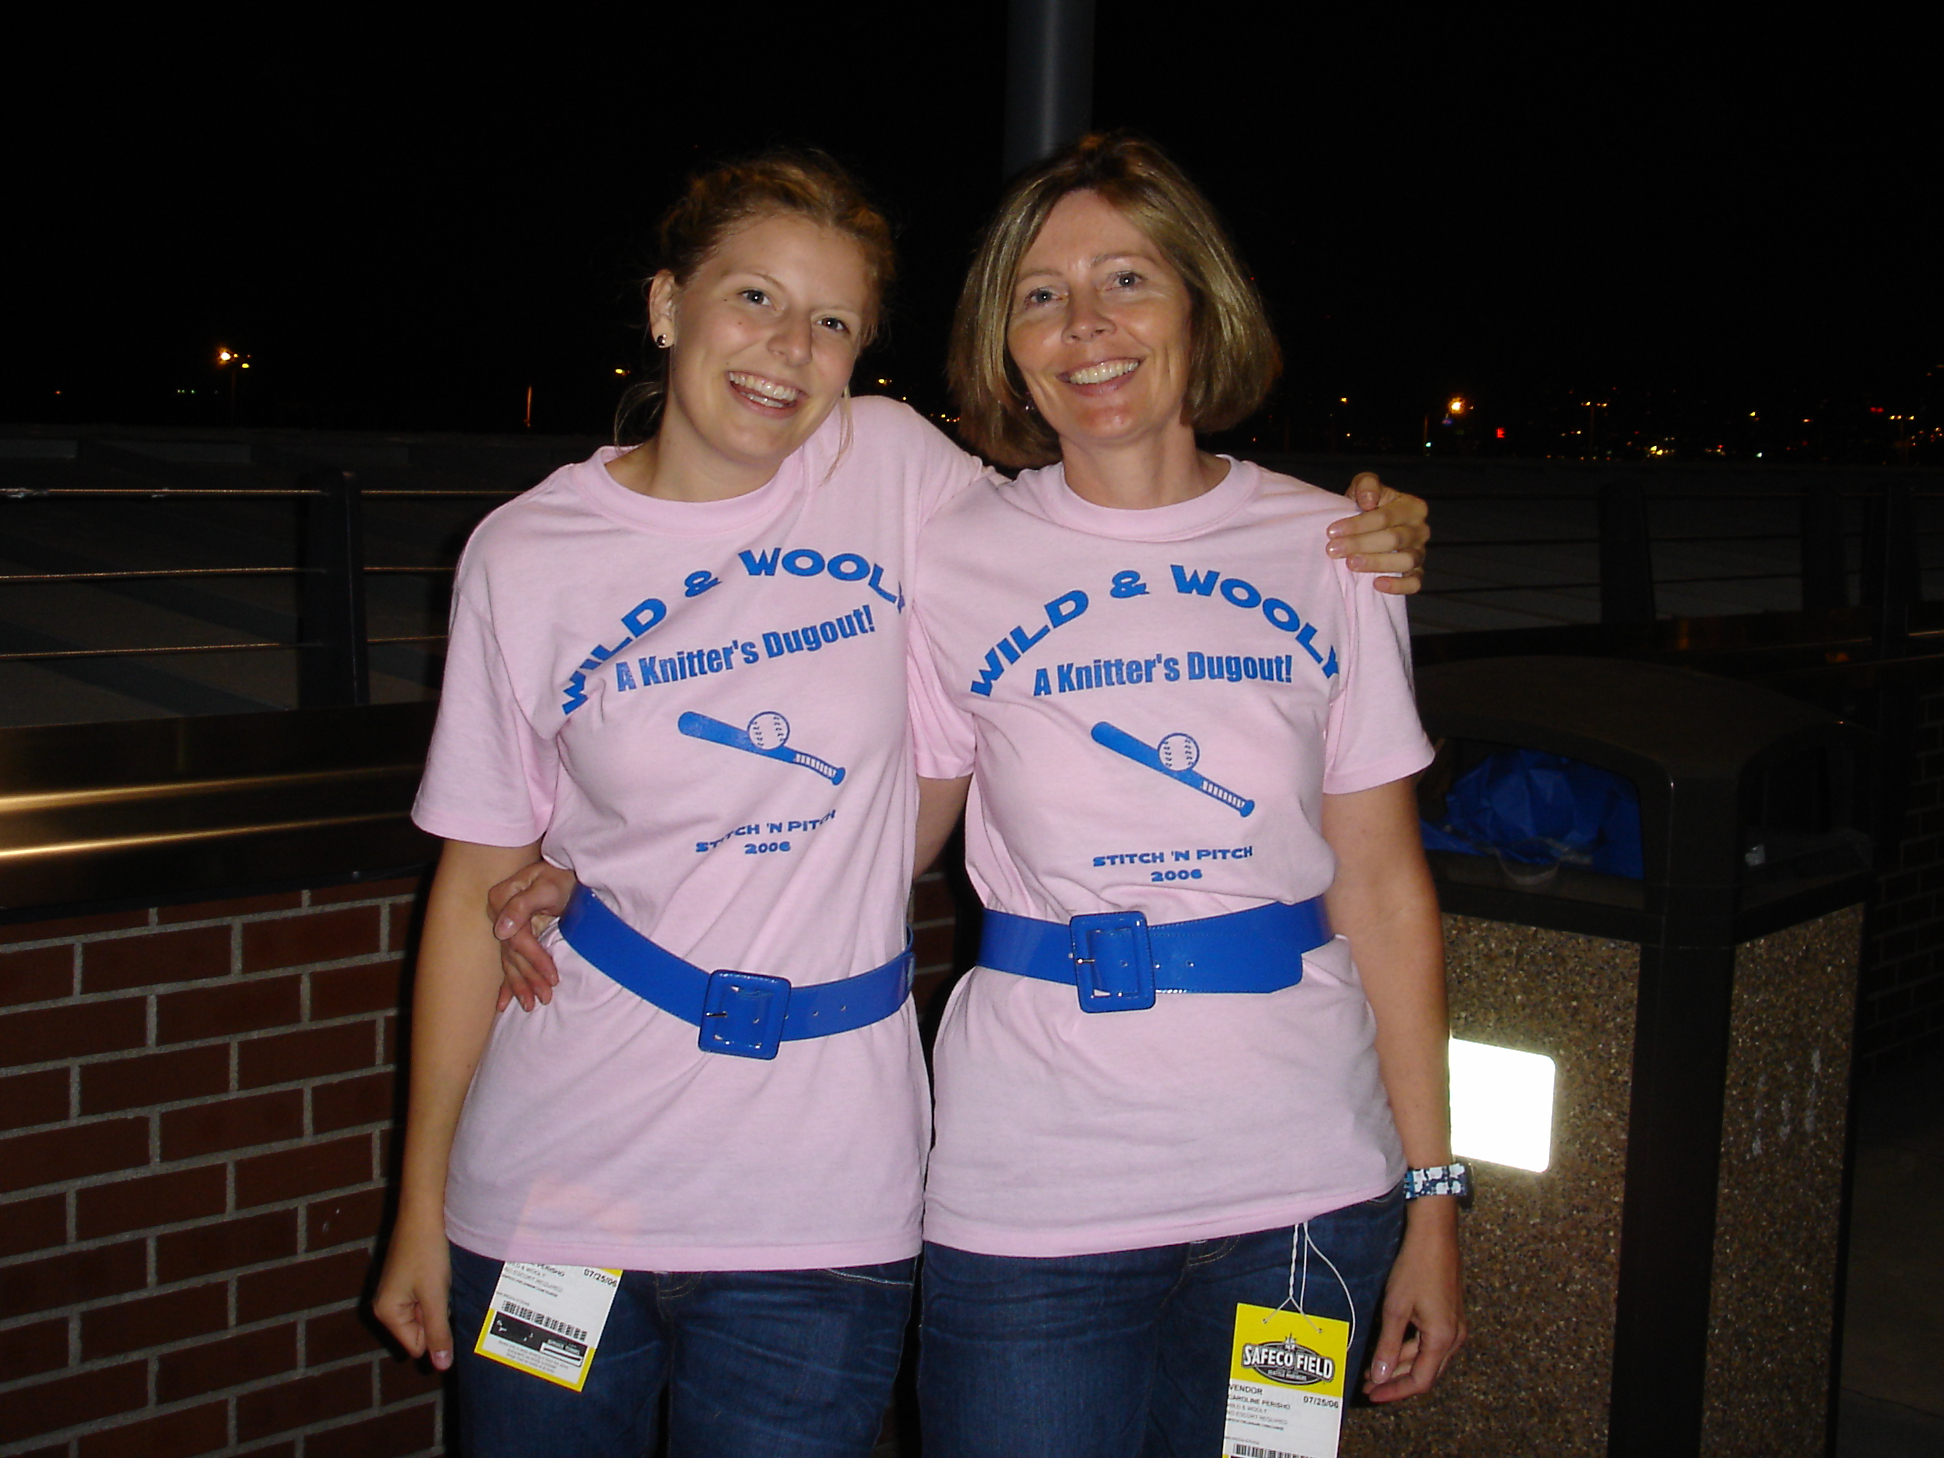 Design your own t-shirt baseball